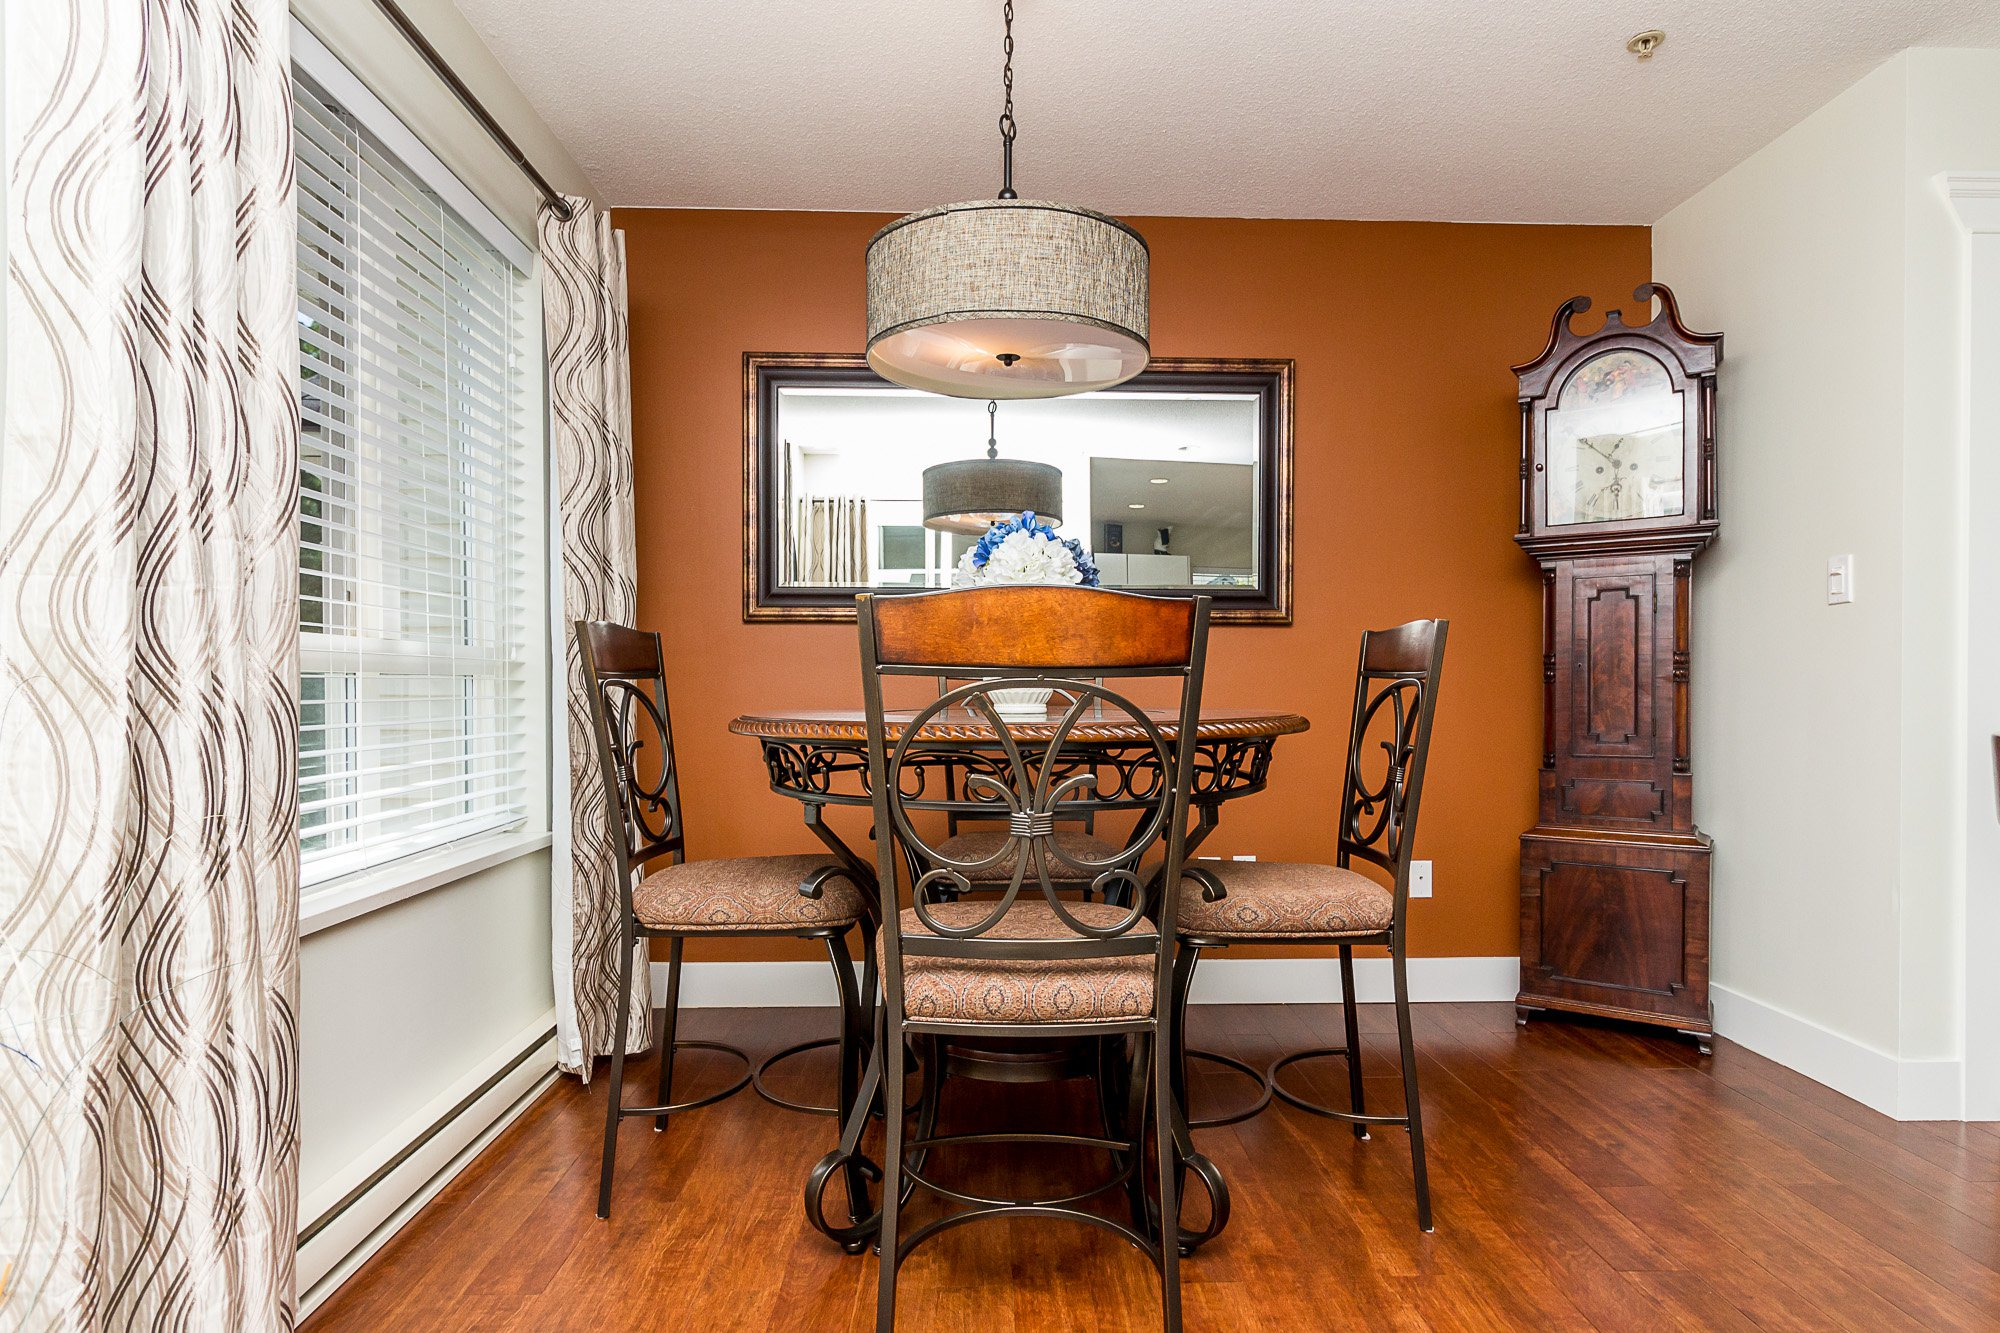 """Photo 10: Photos: 412 22022 49 Avenue in Langley: Murrayville Condo for sale in """"Murray Green"""" : MLS®# R2266359"""